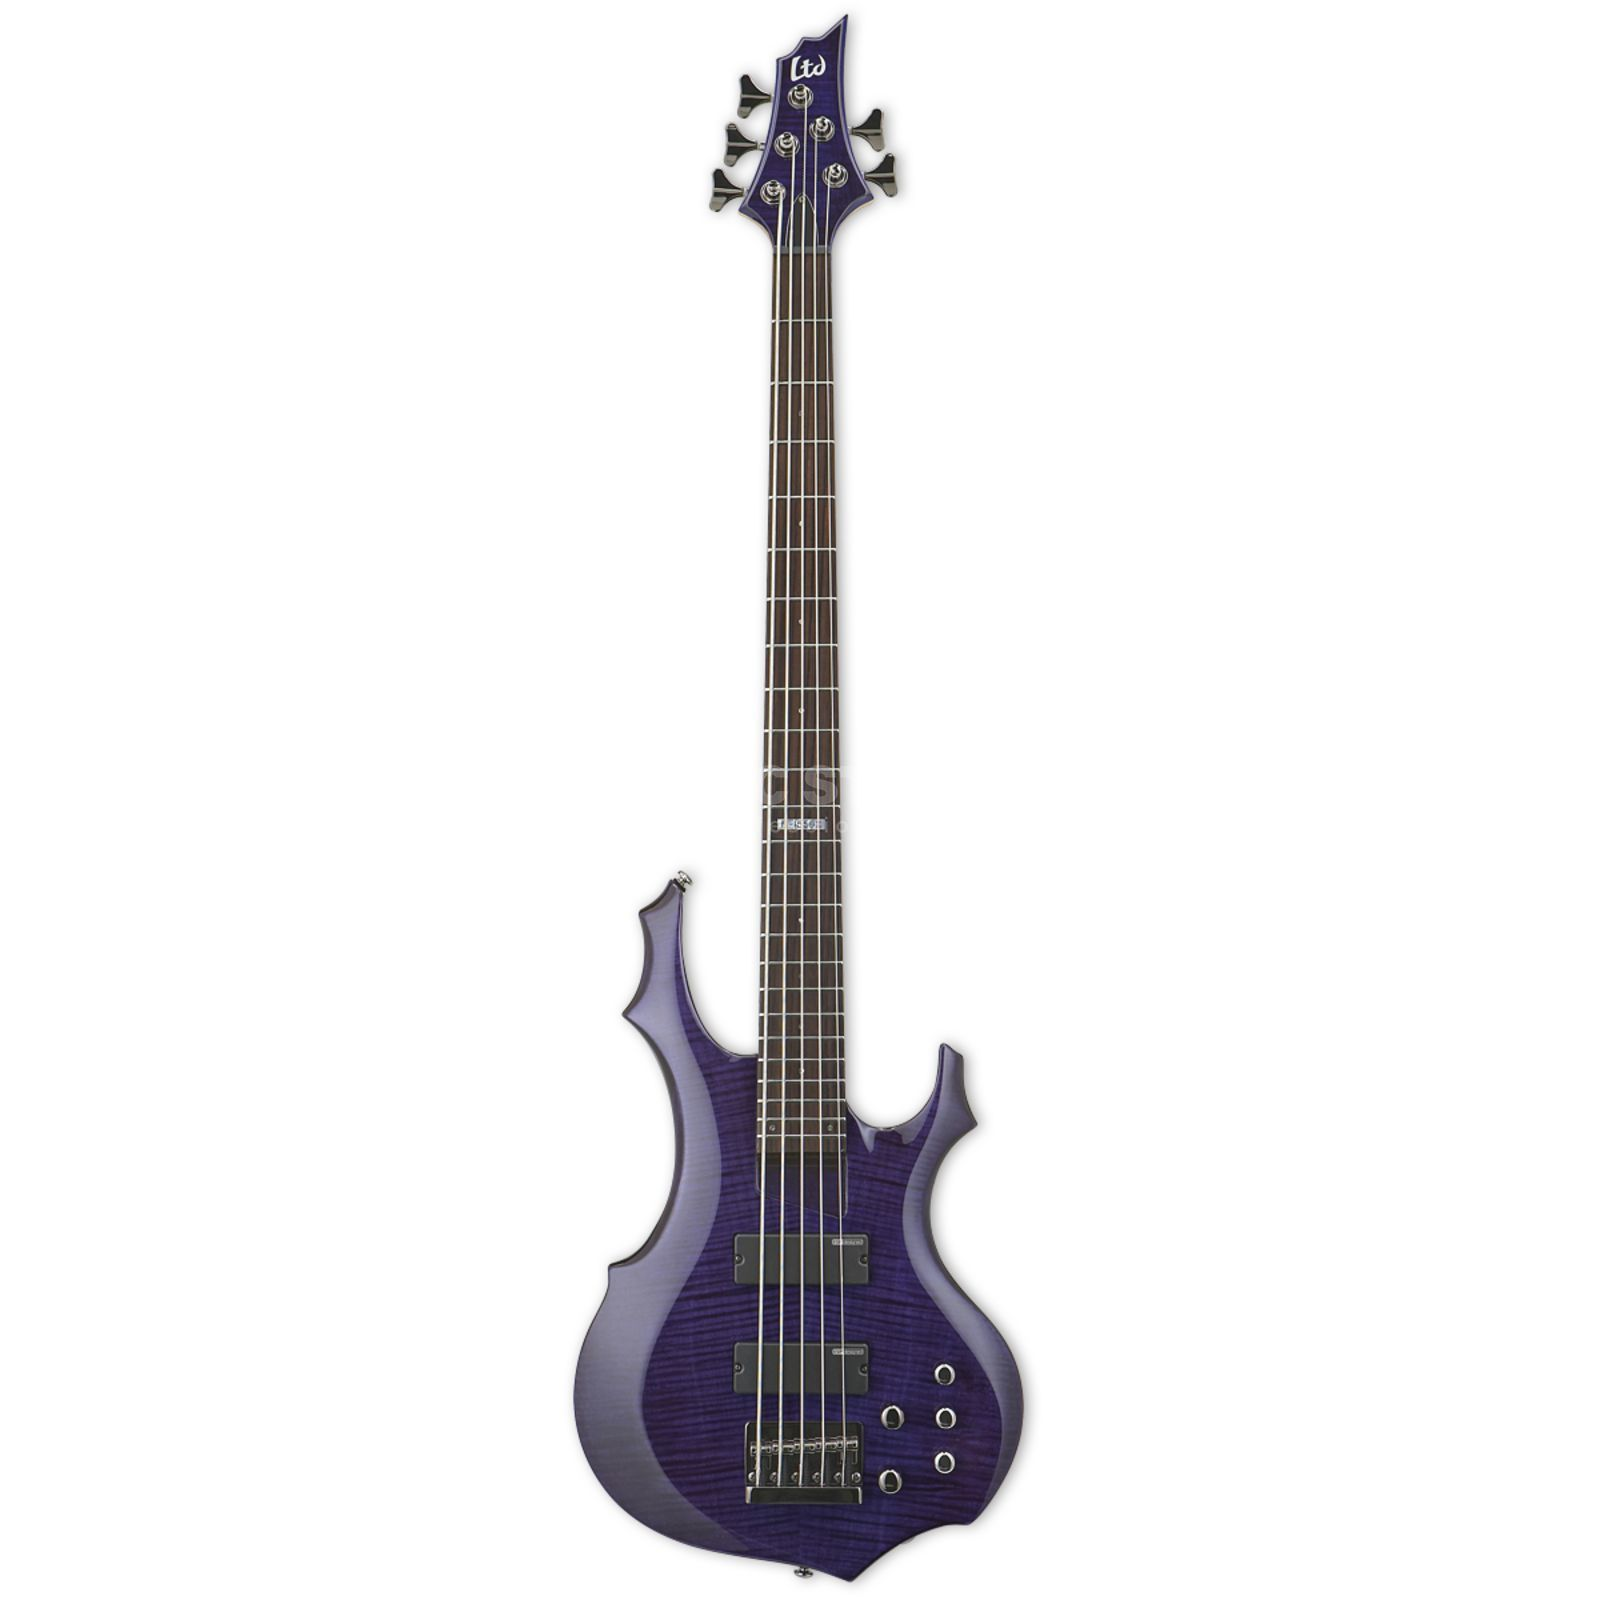 ESP LTD F-155DX Electric Bass Guit ar, Dark See Thru Purple   Zdjęcie produktu